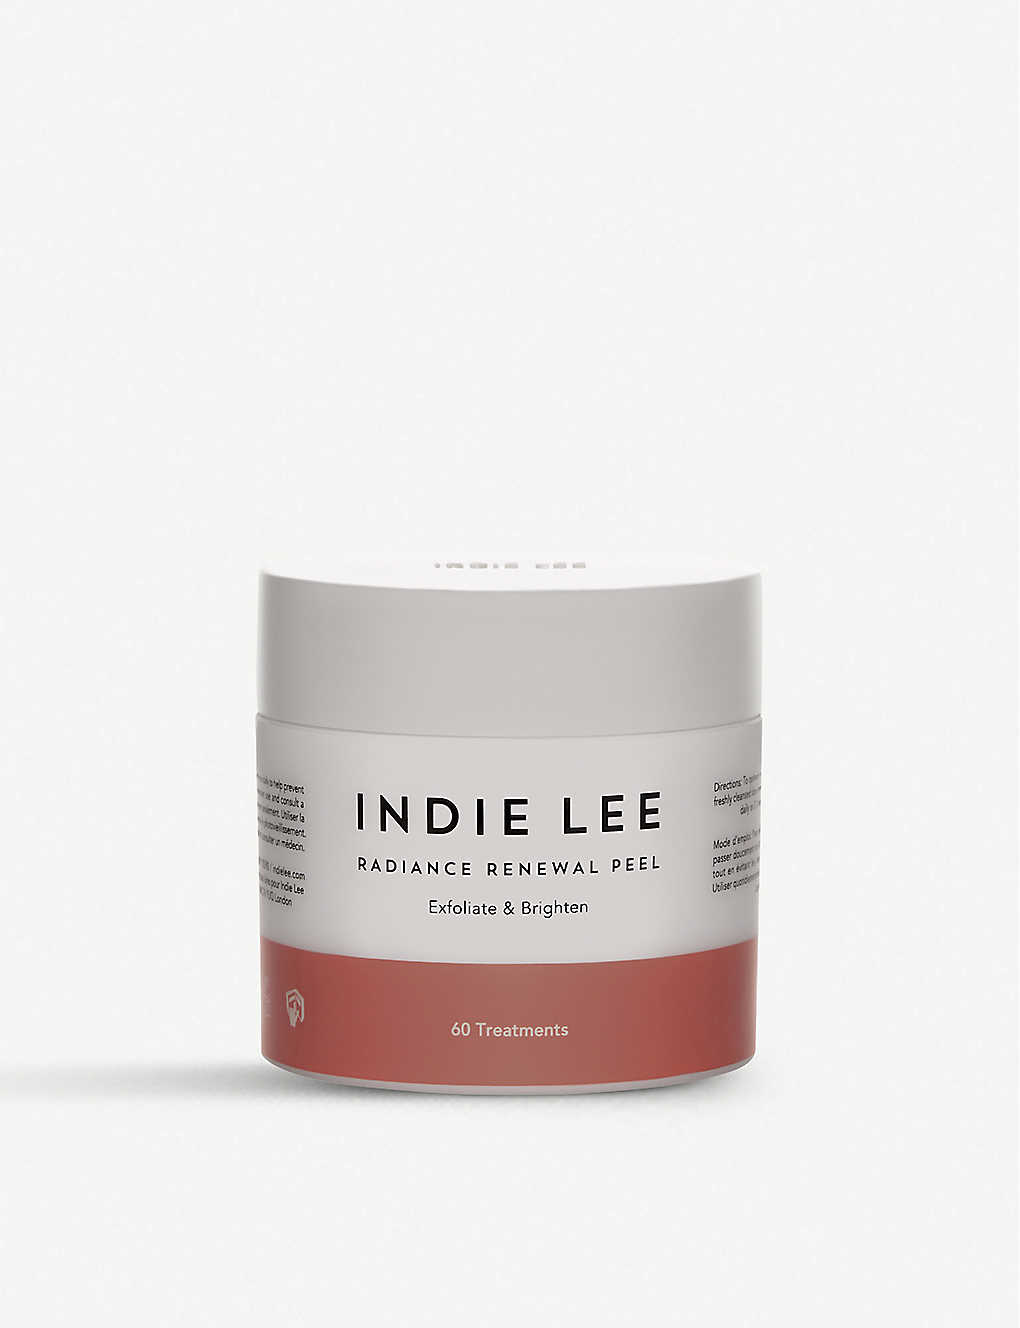 INDIE LEE: Radiance Renewal Peel